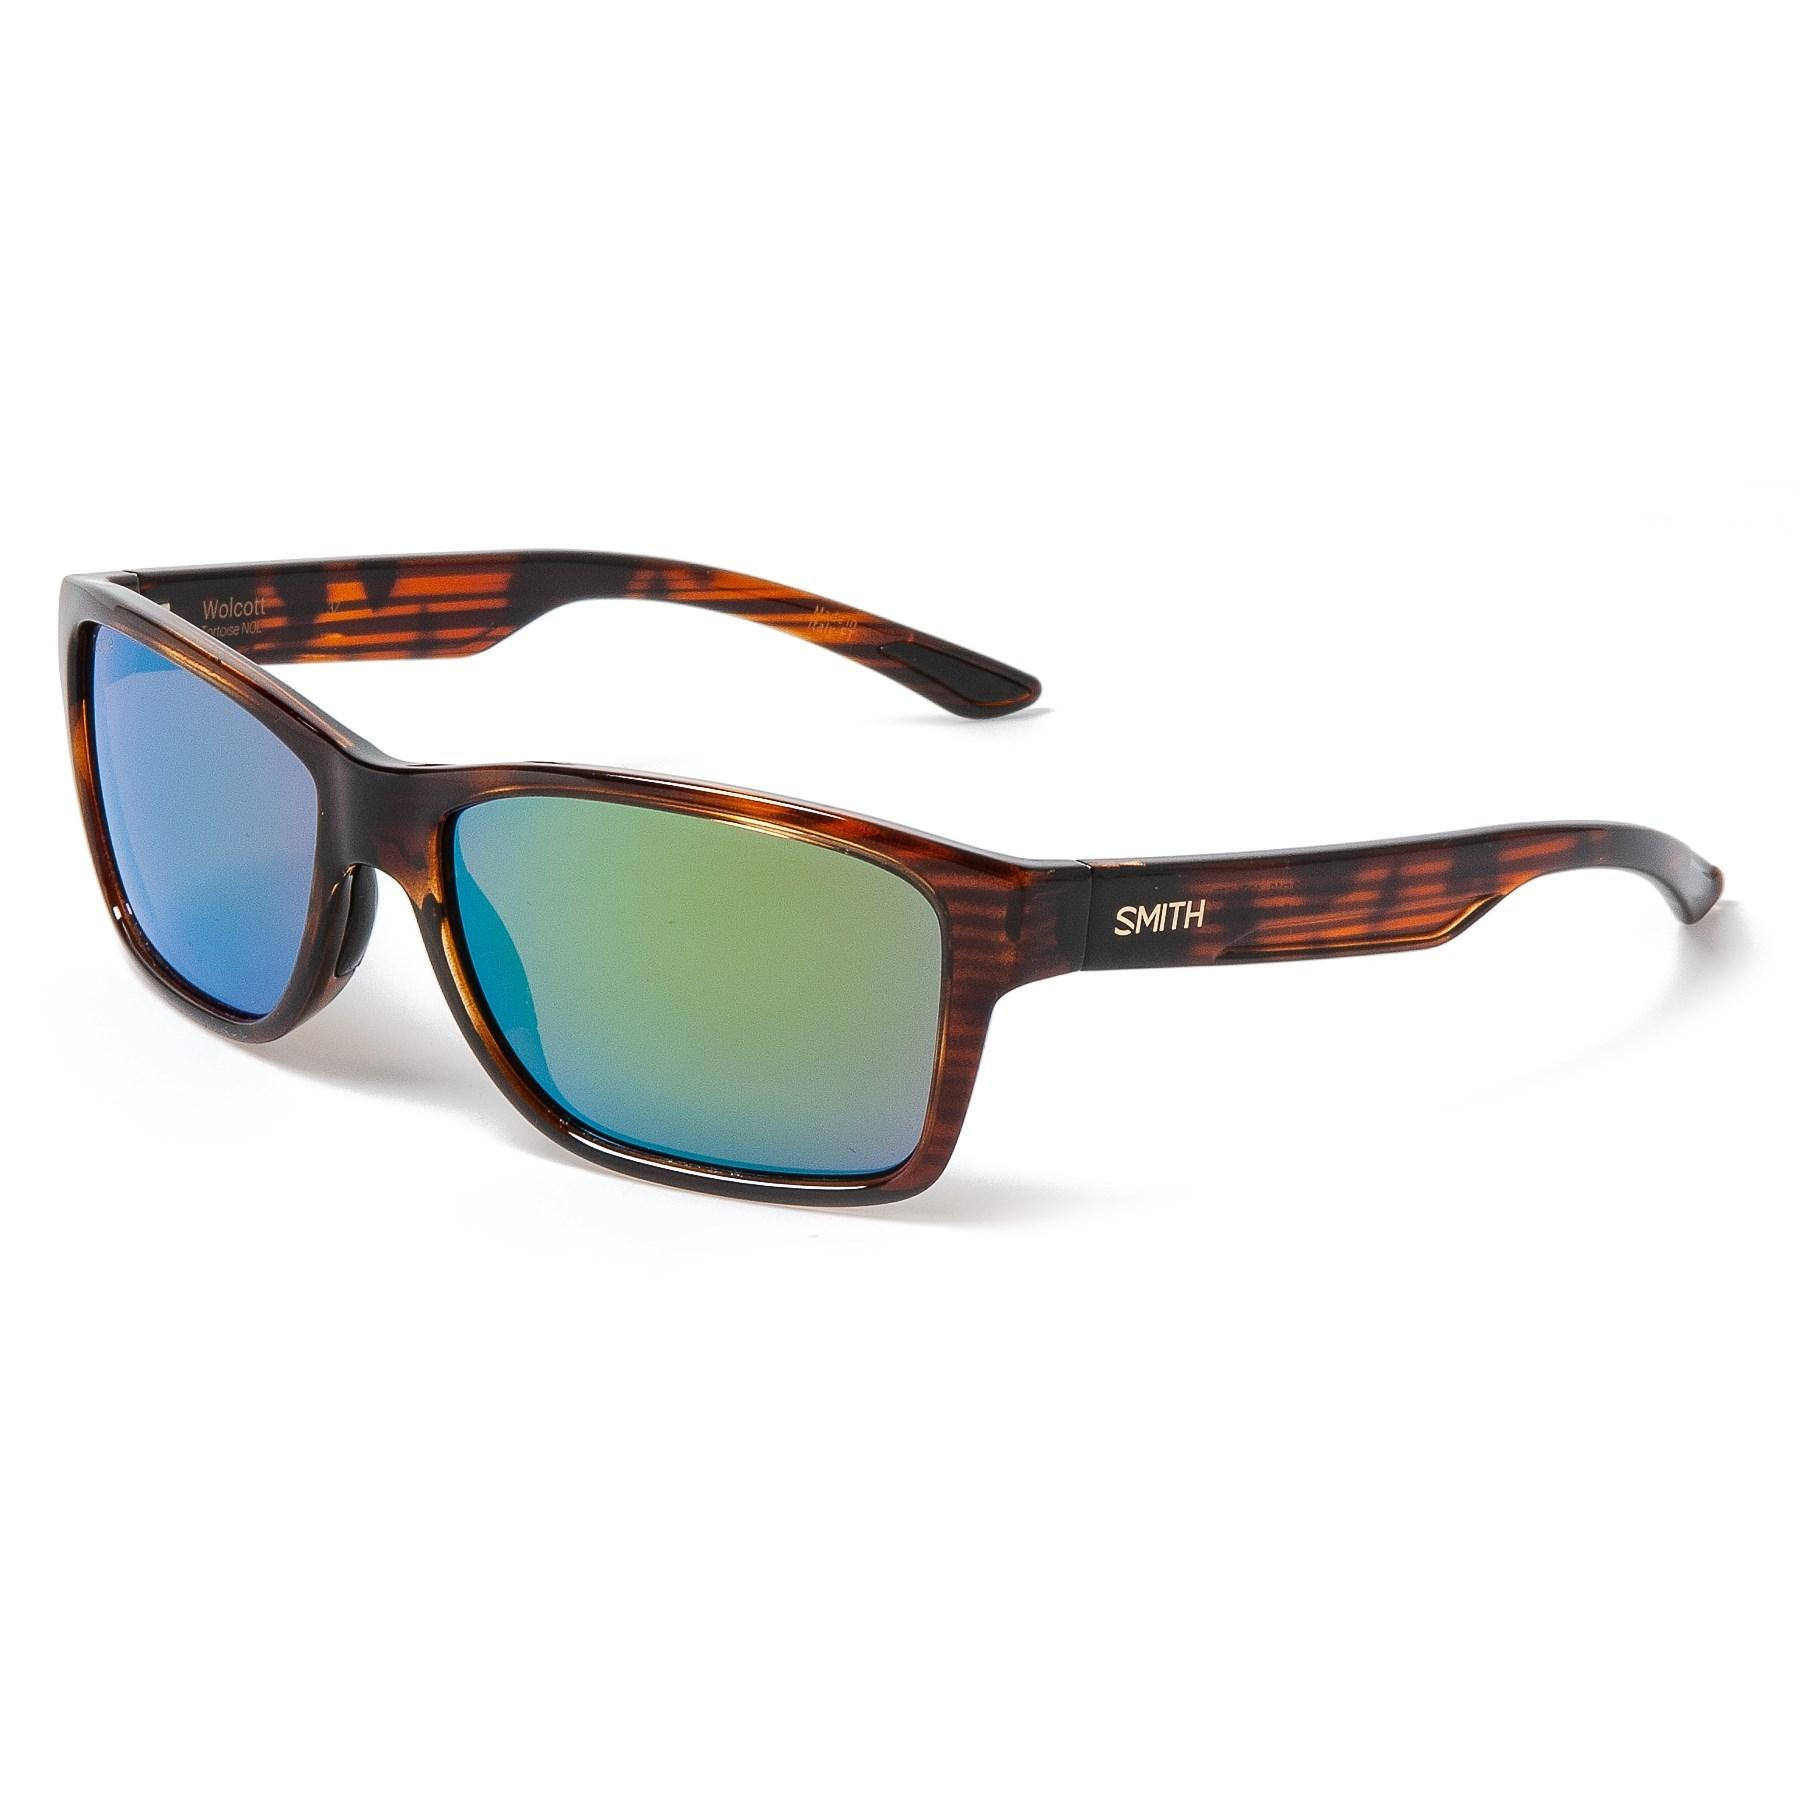 2075b2ac986 Lyst - Smith Optics Wolcott Sunglasses in Green for Men